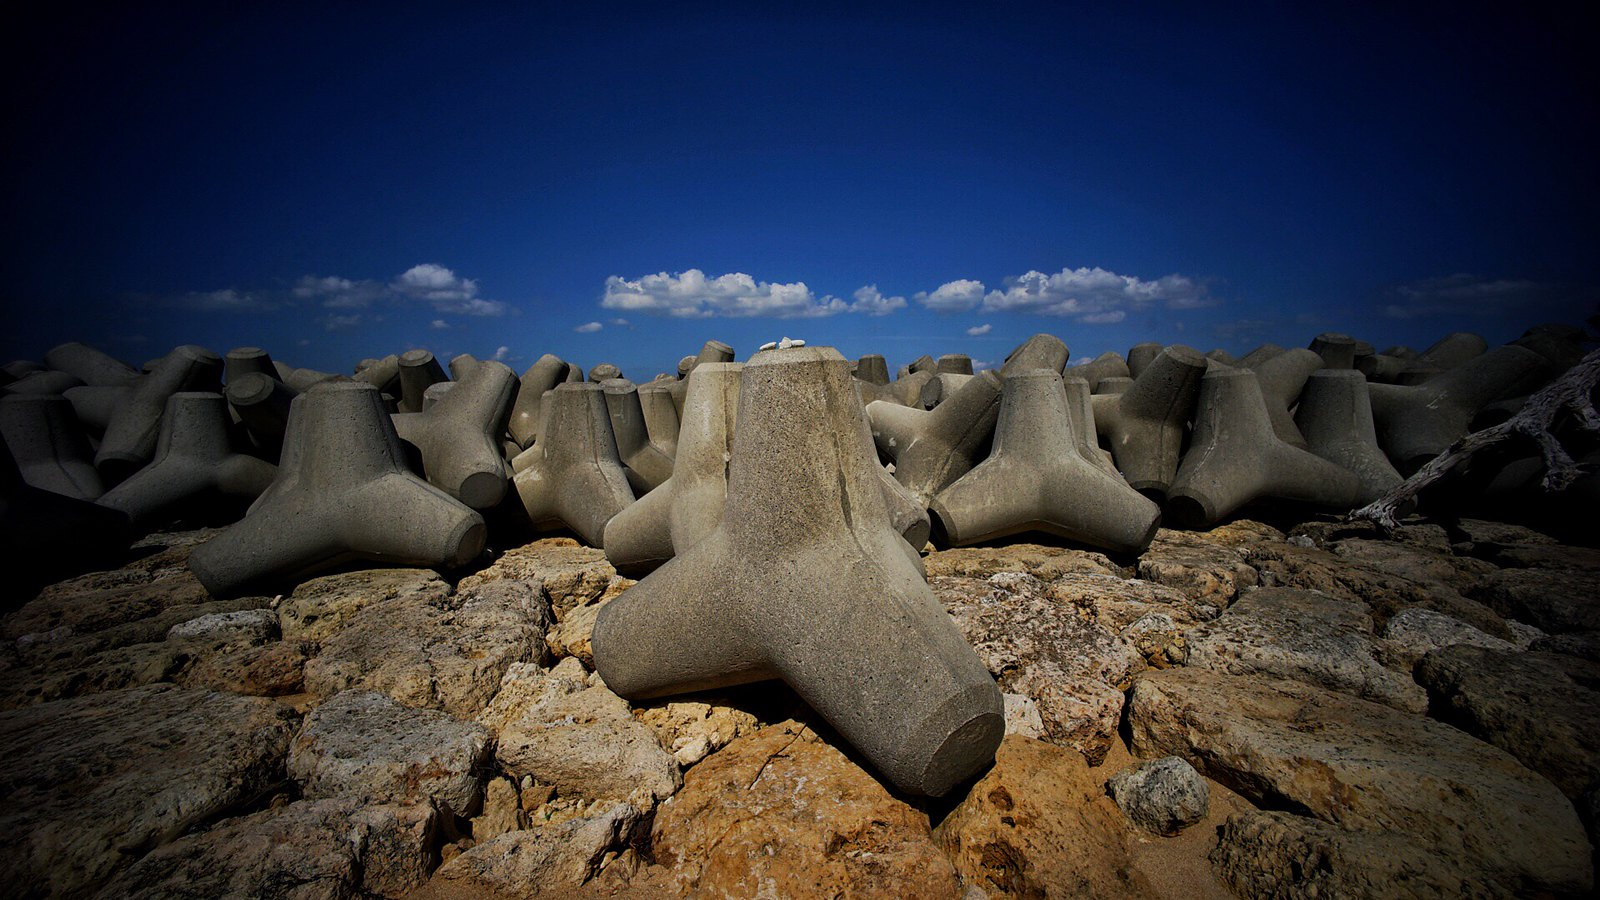 Attack of the Tetrapods! #SonyA7 #Voigtlander12mm #UltraWideAngle #Okinawa #japan15 #foto